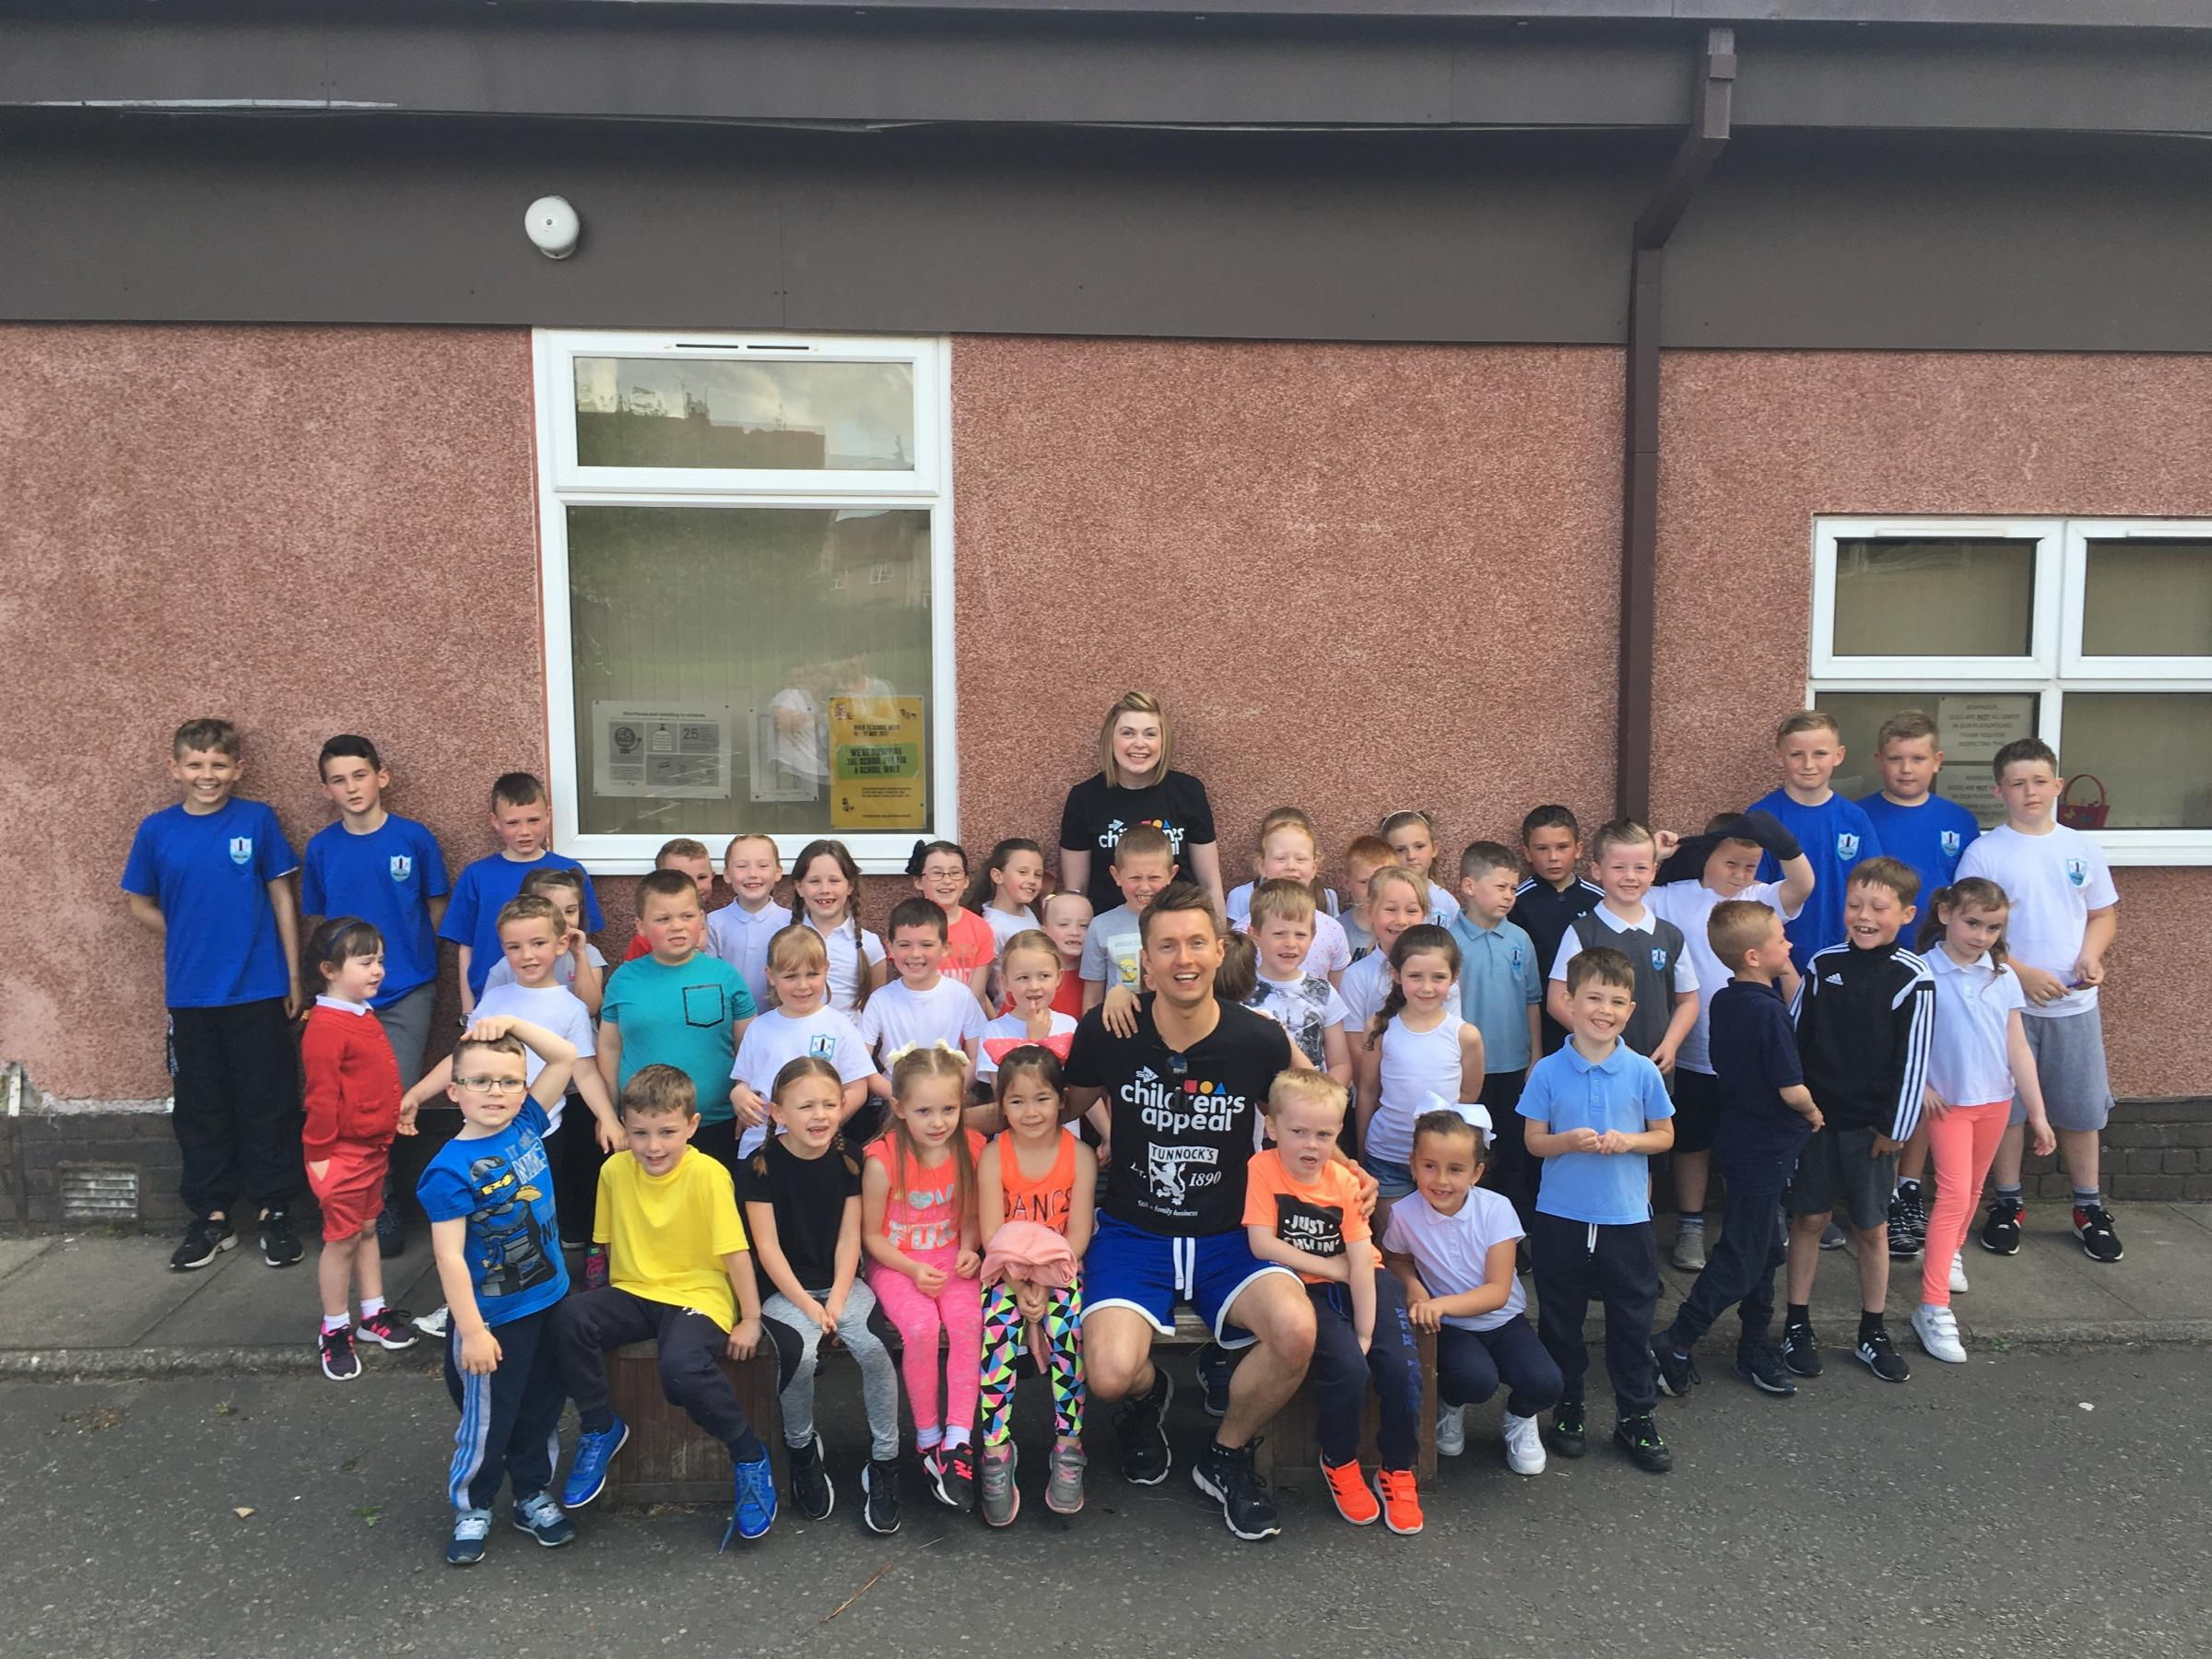 STV weatherman Sean Batty visited Fallin Primary in Stirling